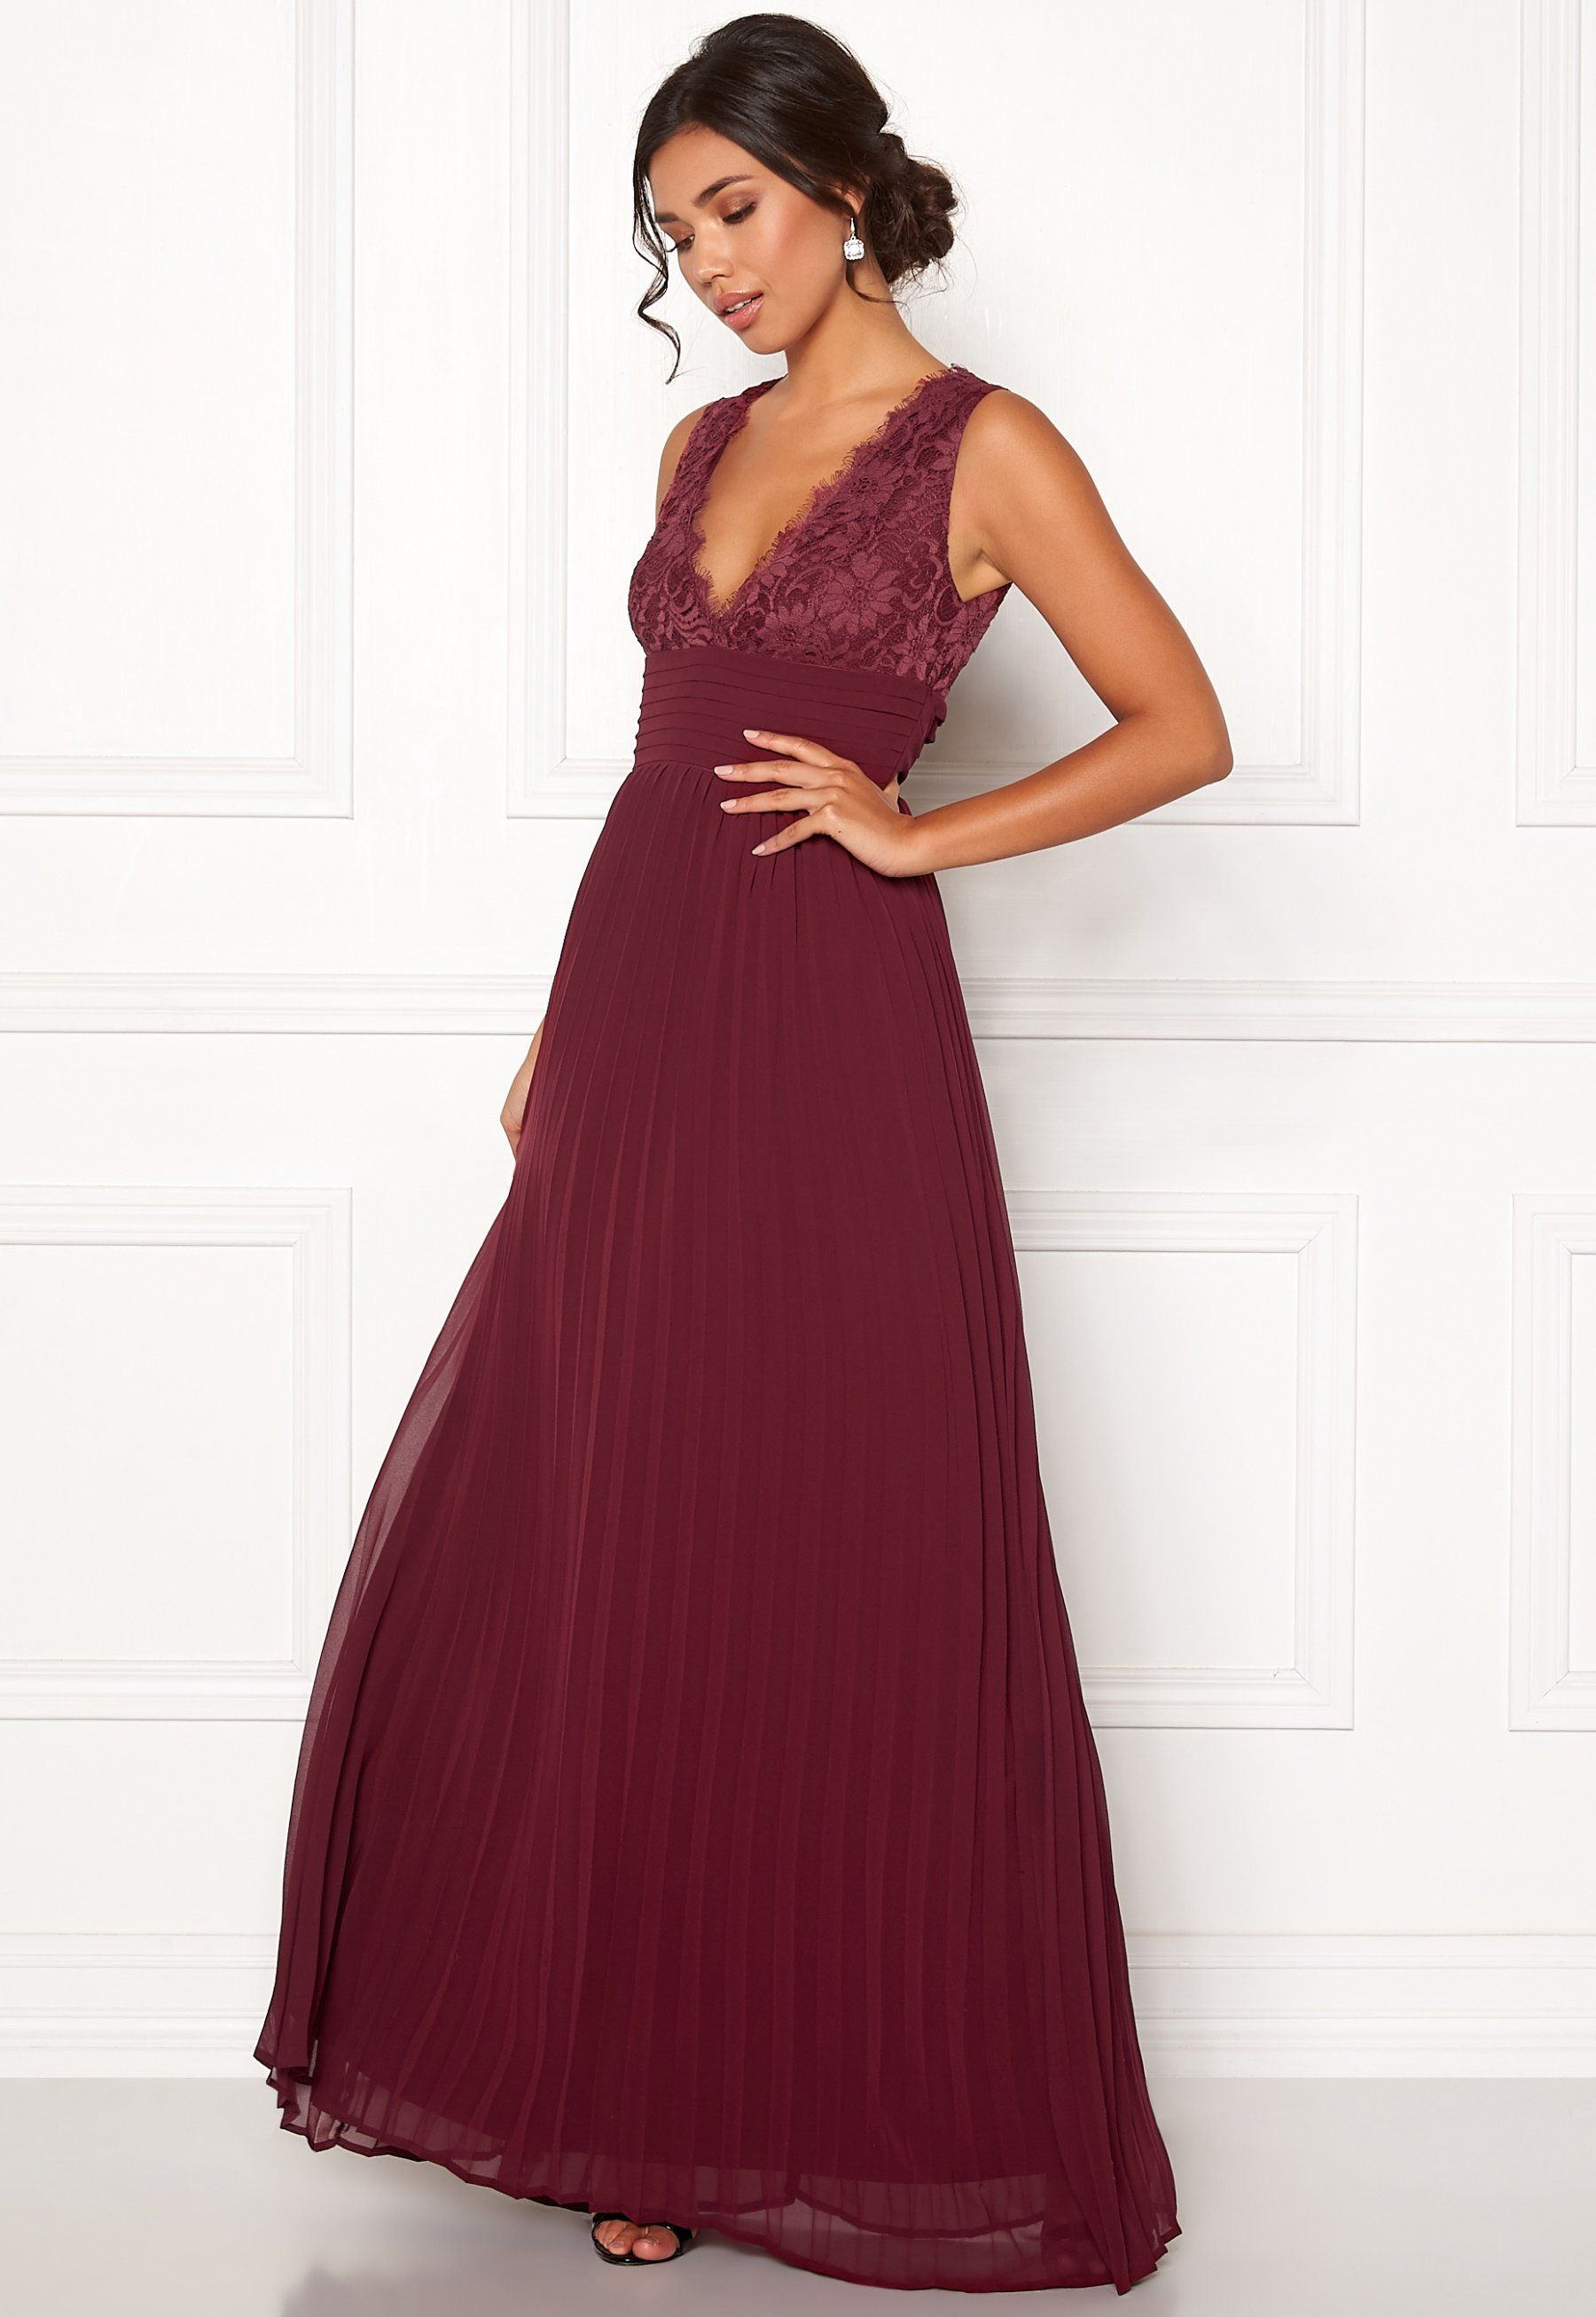 Bubbleroom Marianna Lace Top Gown Wine Red Bubbleroom Lace Top Gown Beautiful Long Dresses Gowns